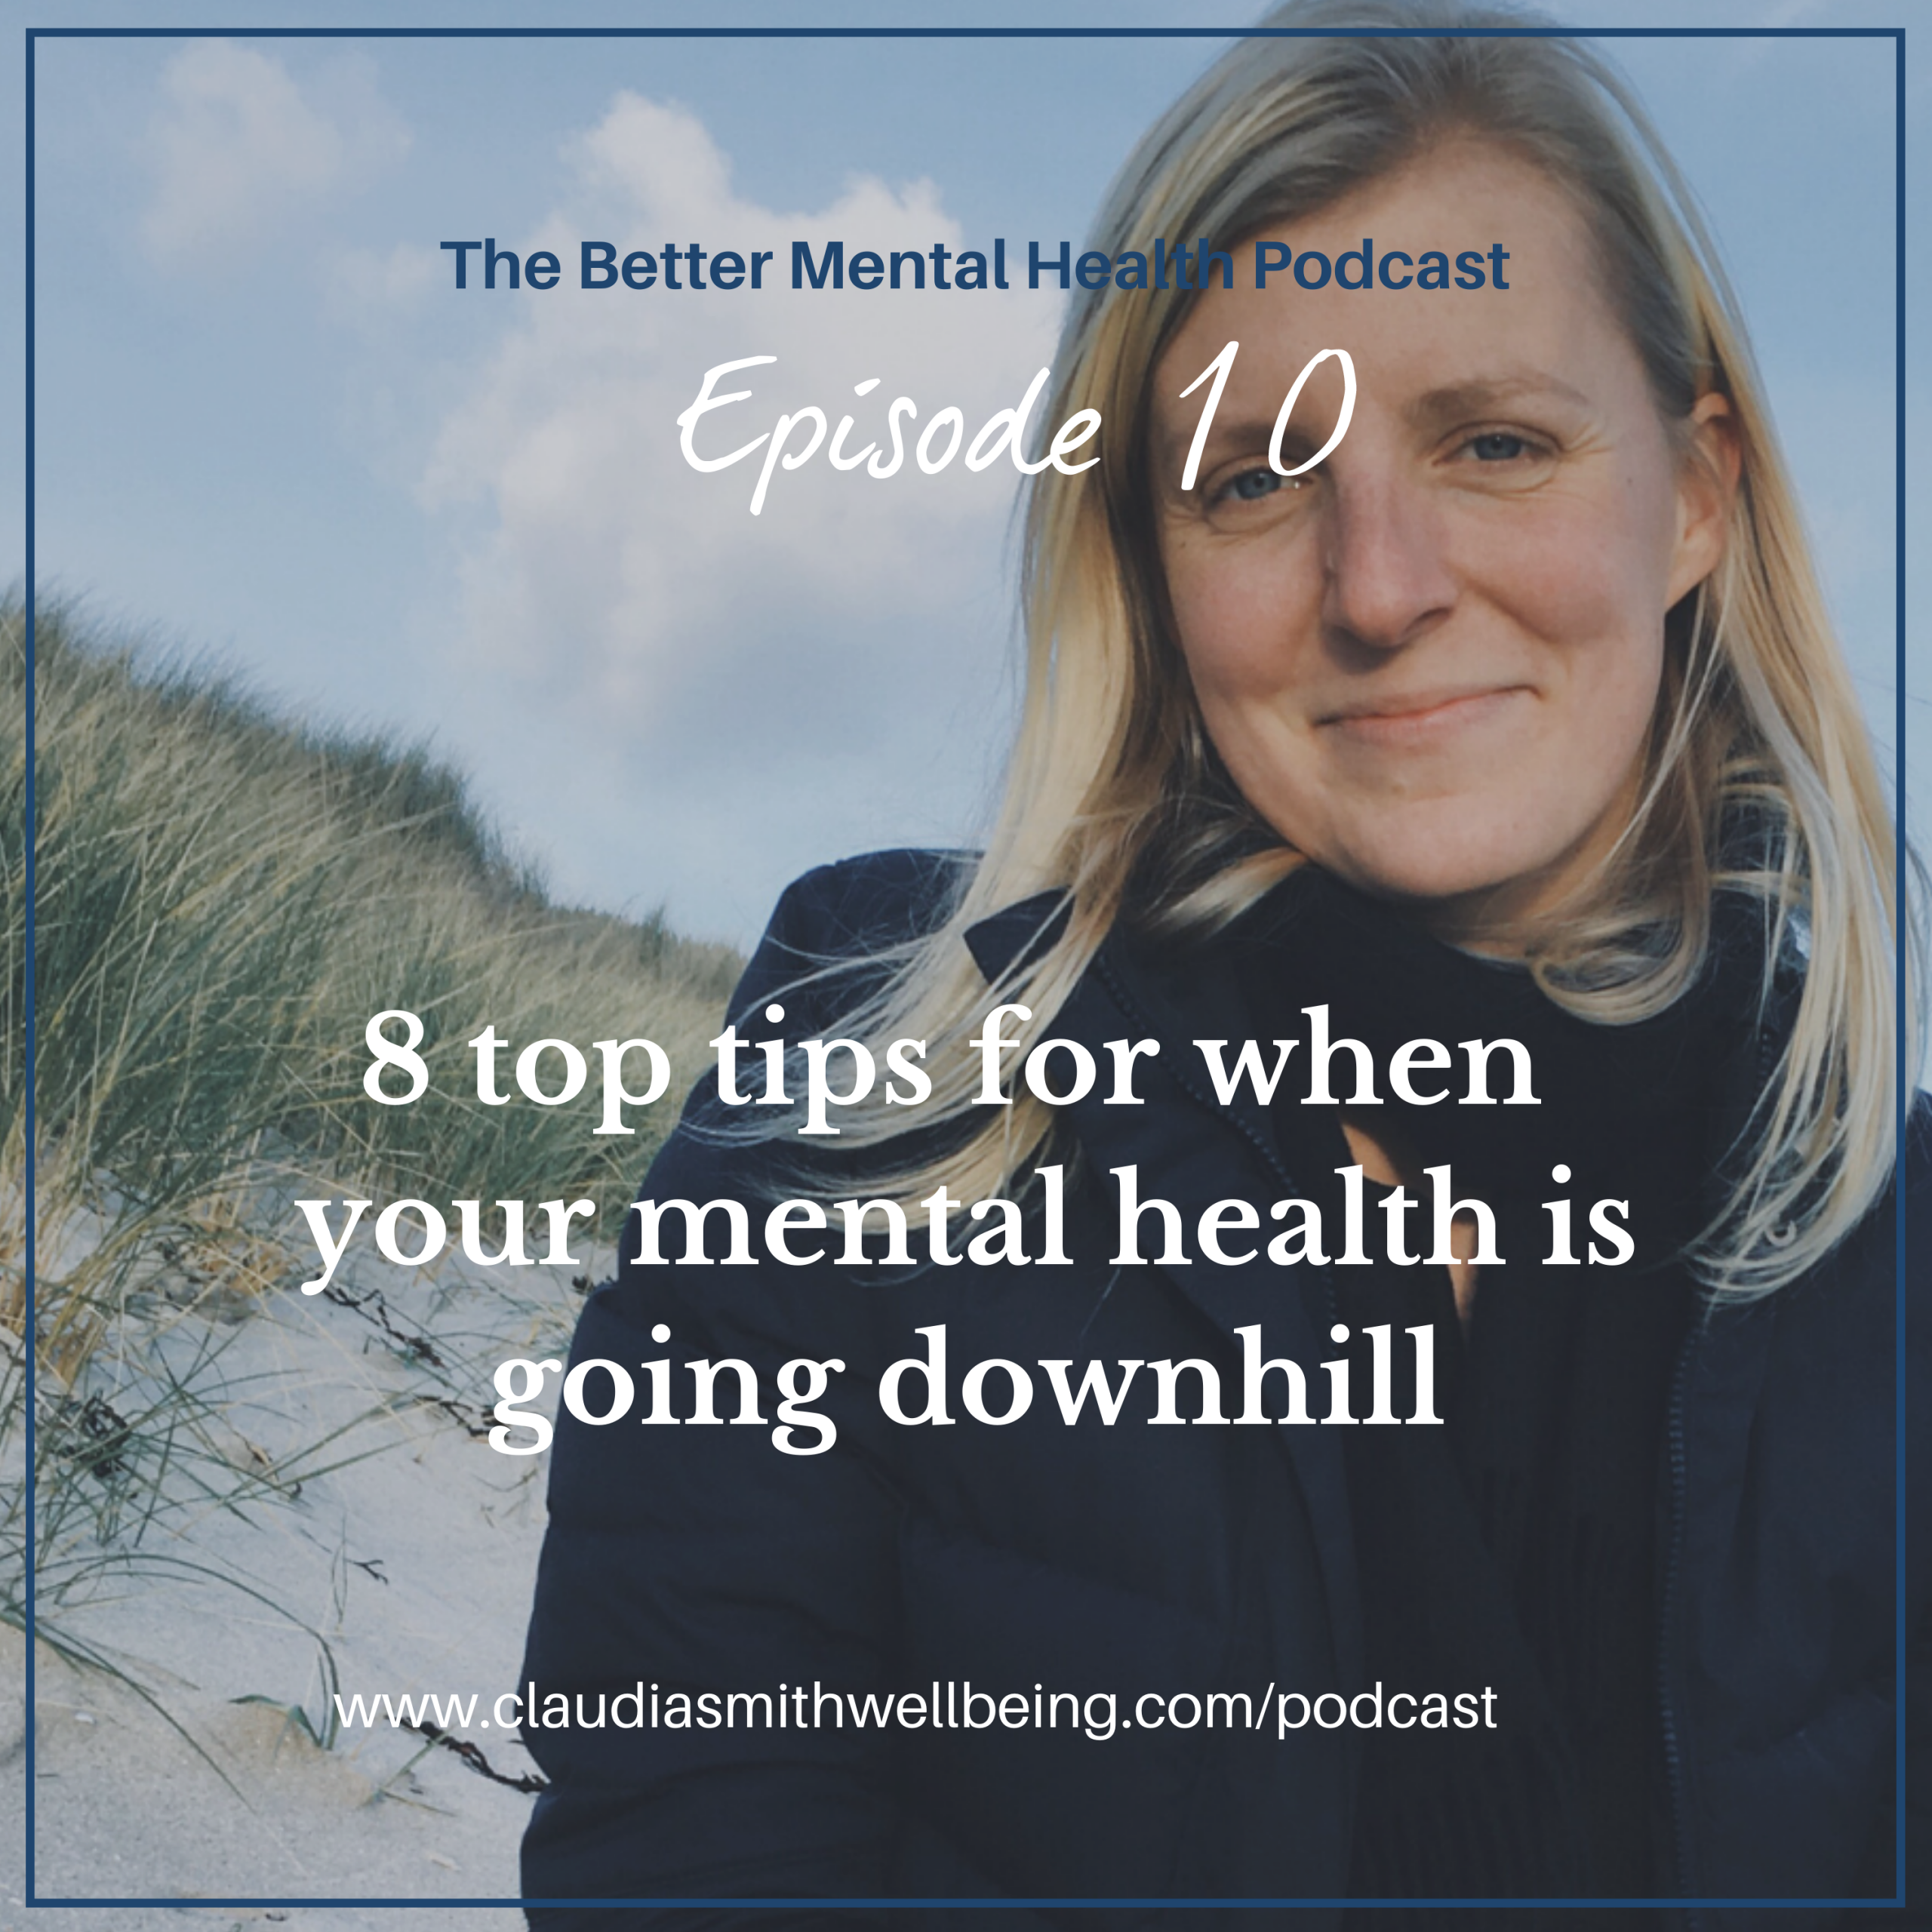 8 top tips for when your mental health is going downhill